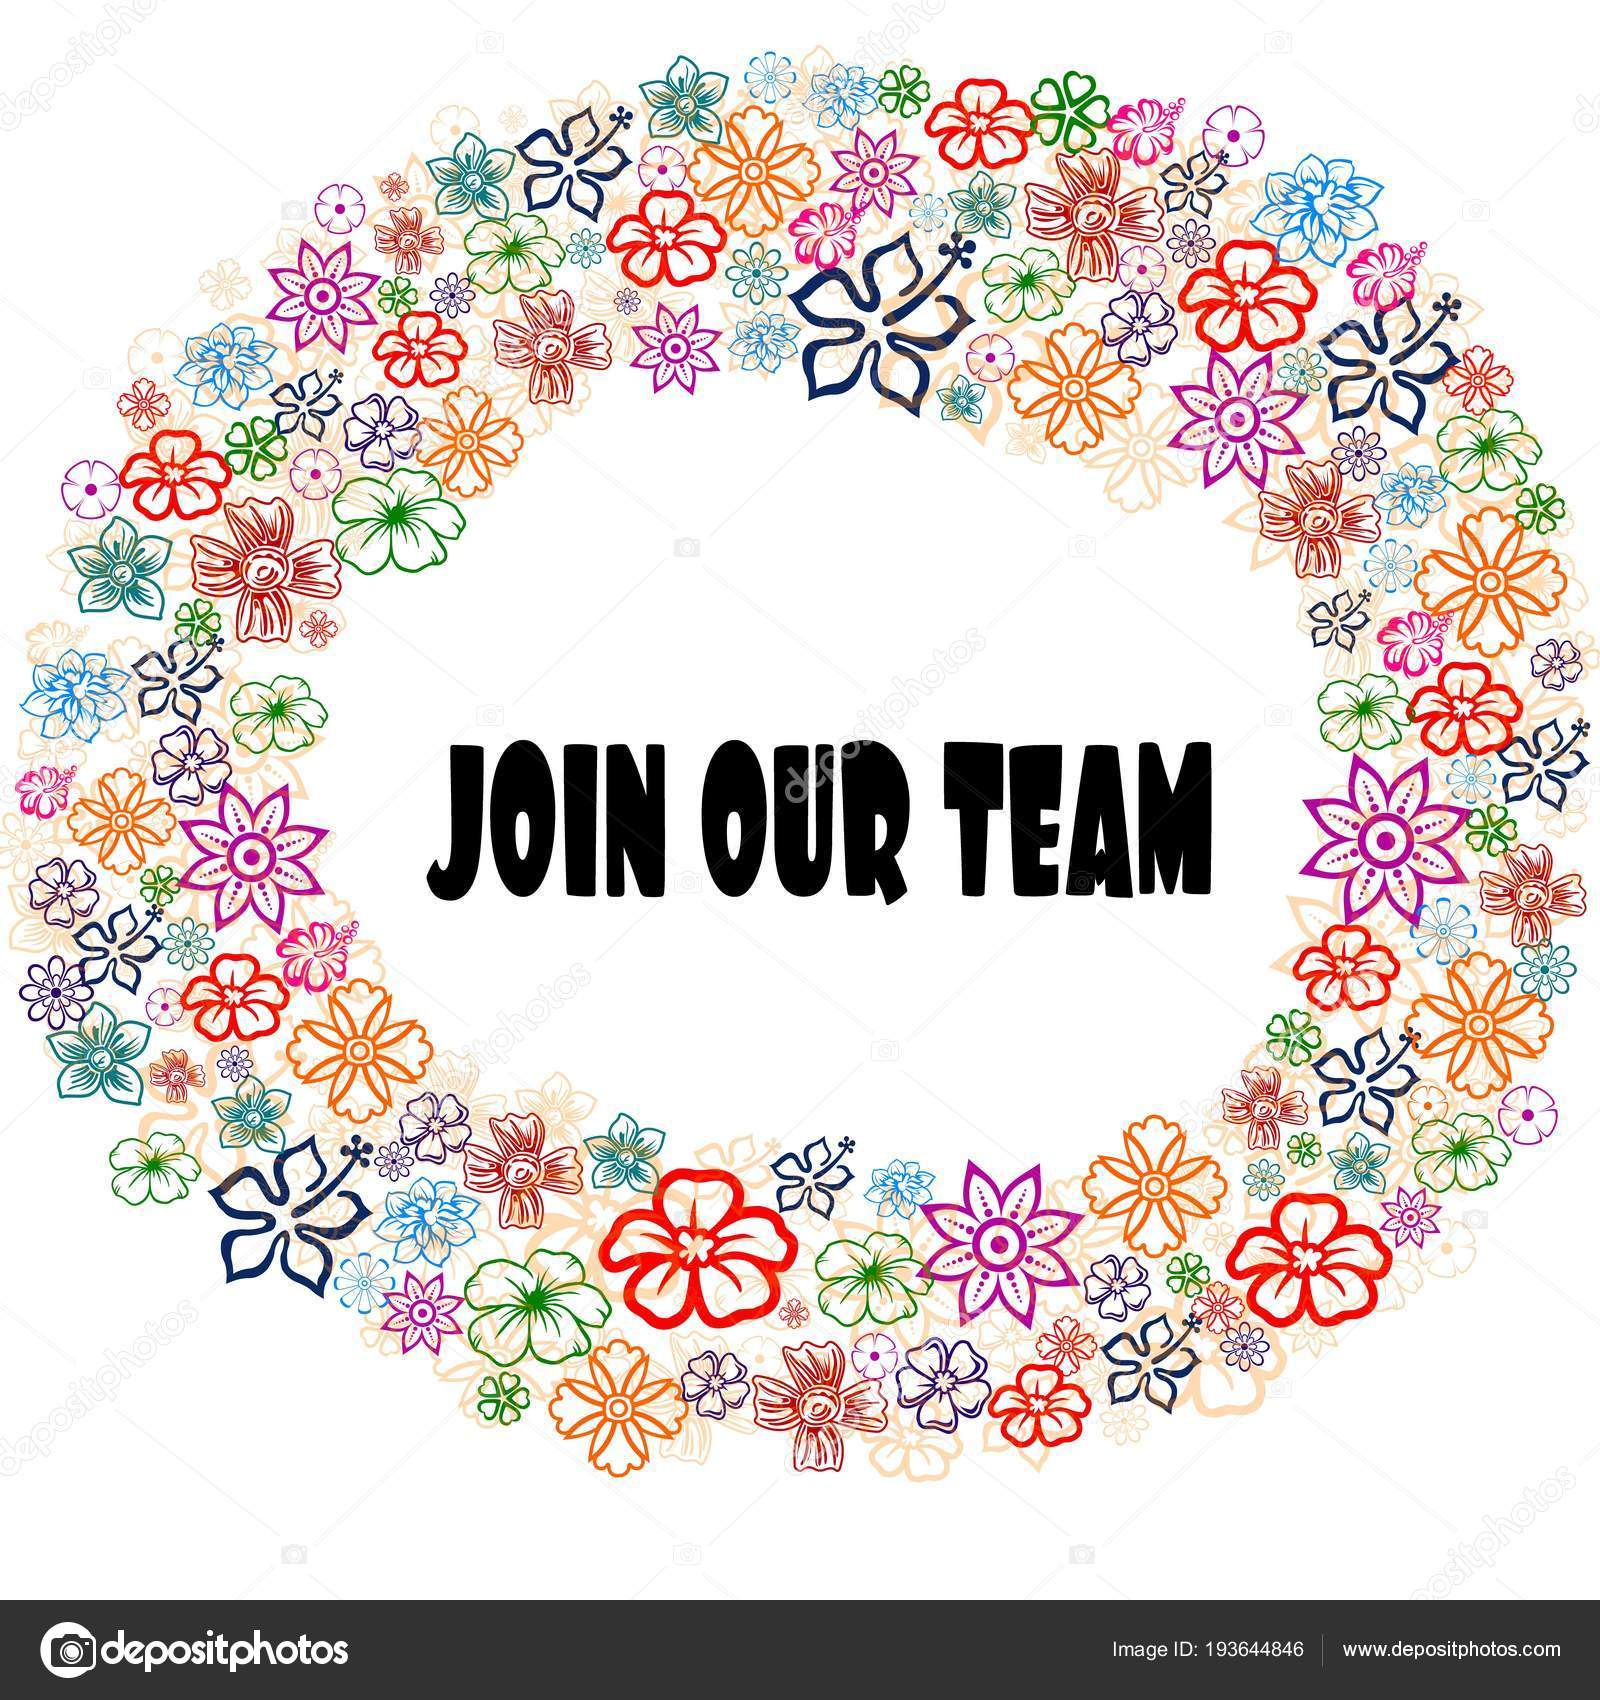 JOIN OUR TEAM in floral frame. — Stock Photo © ionutparvu #193644846